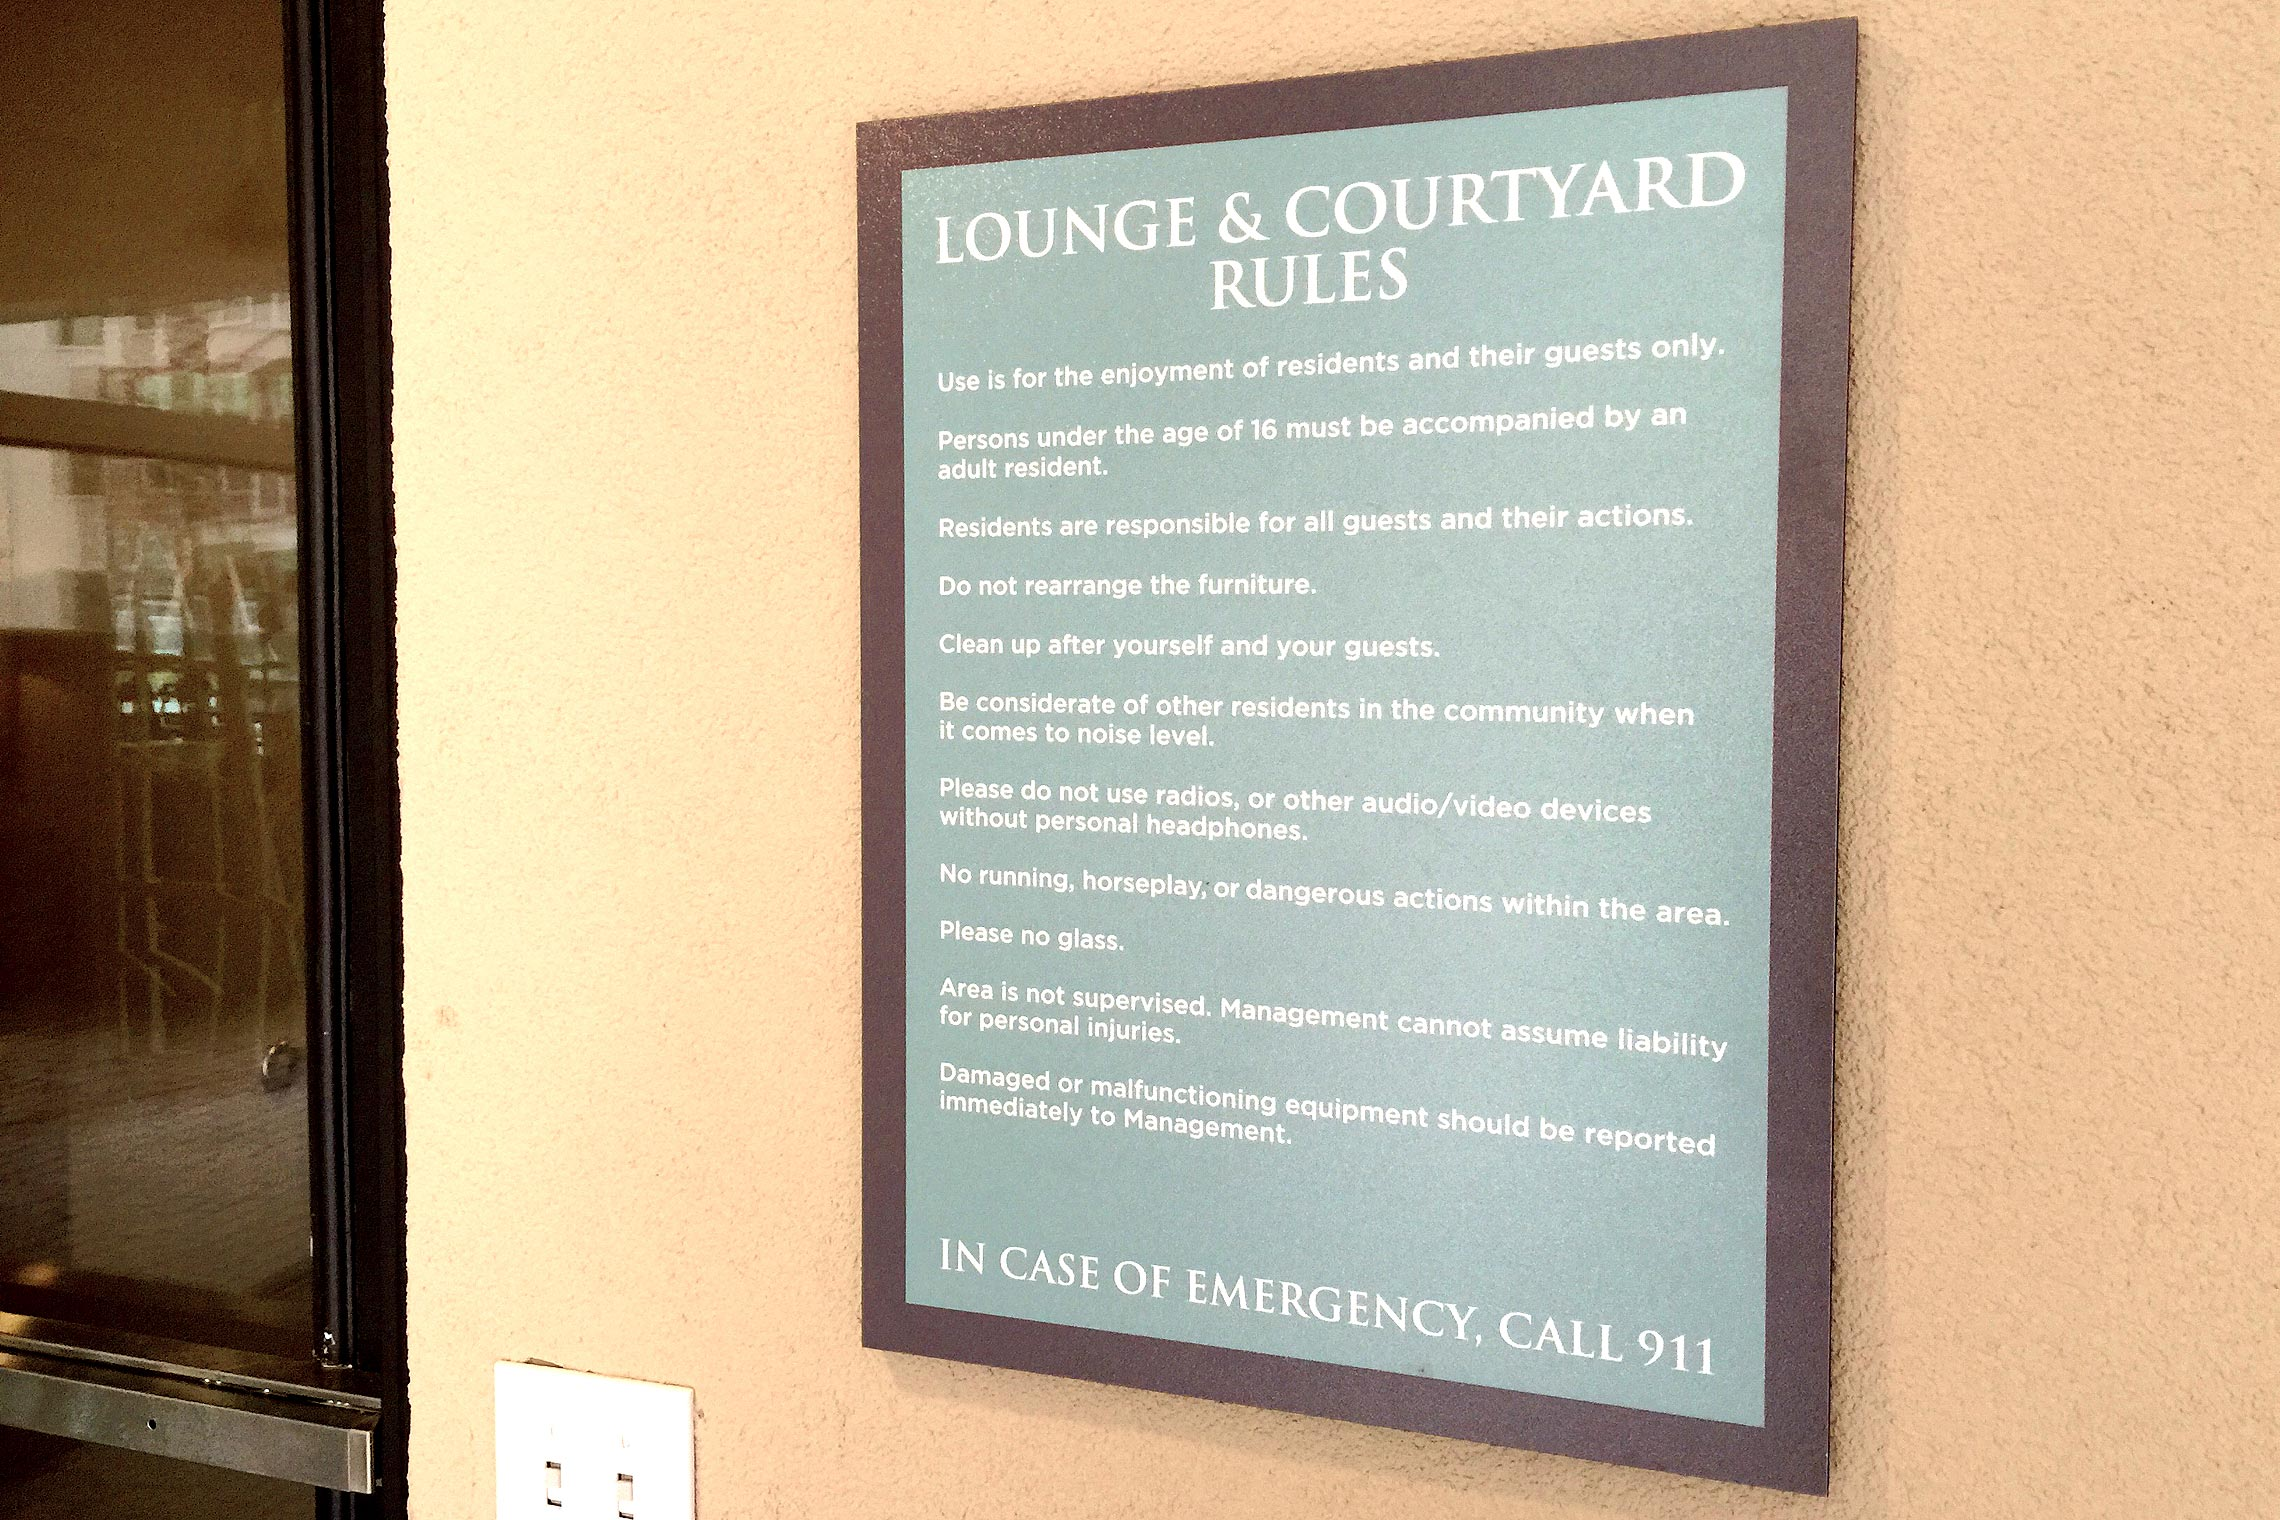 Aura Memorial Lounge & Courtyard Rules Sign